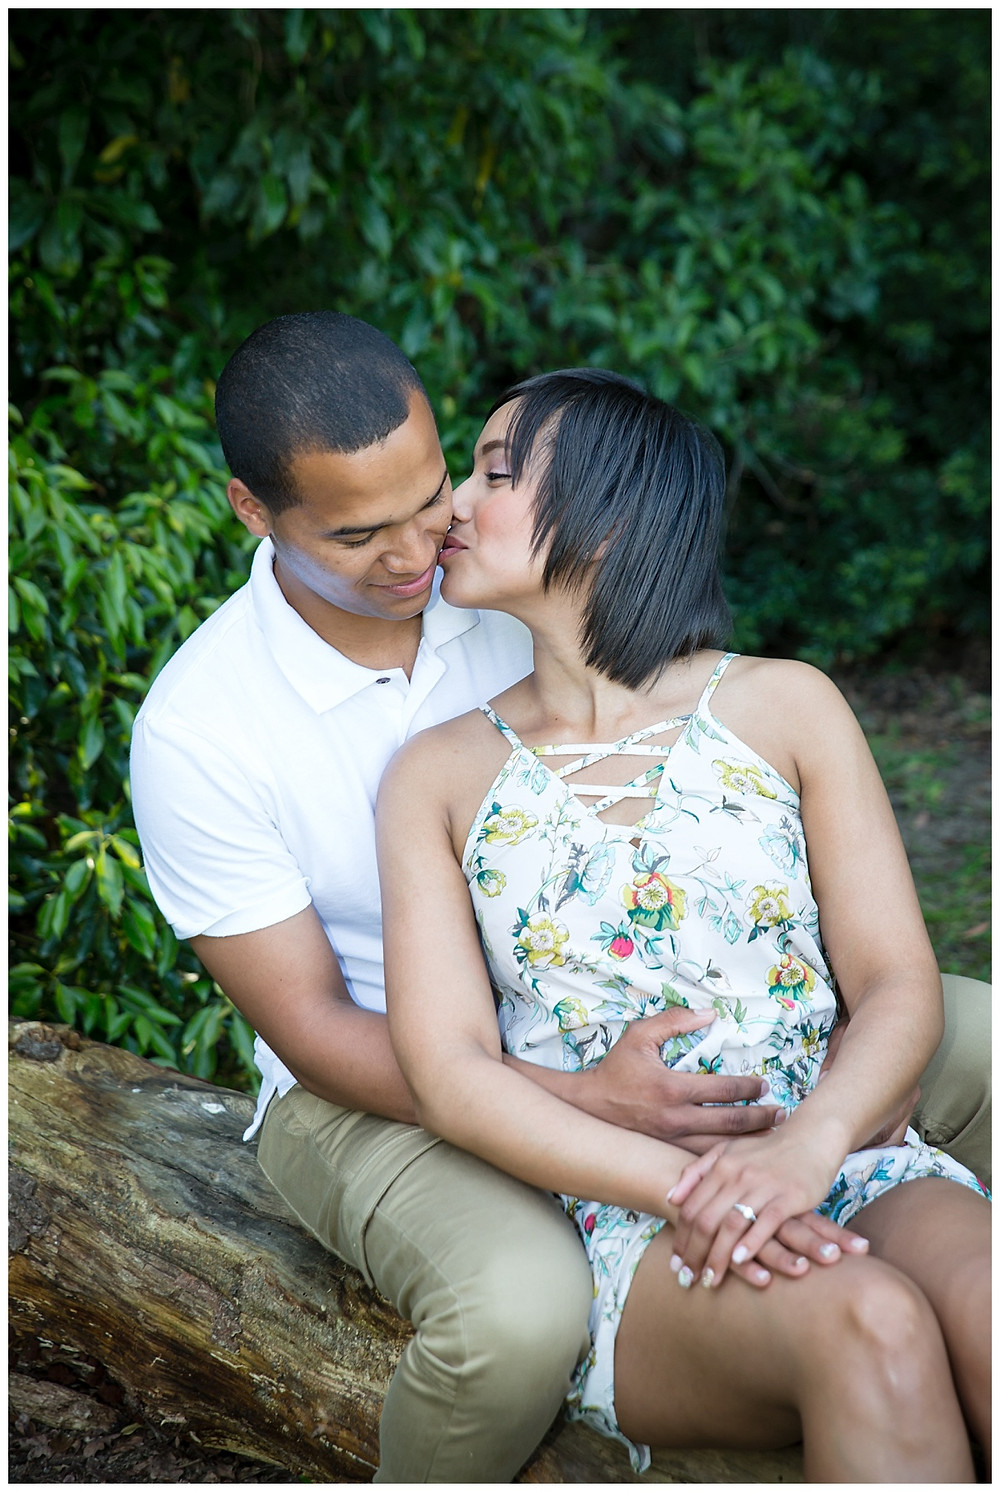 Engagement shoot Solms Delta by Jaqui Franco Wedding Photography